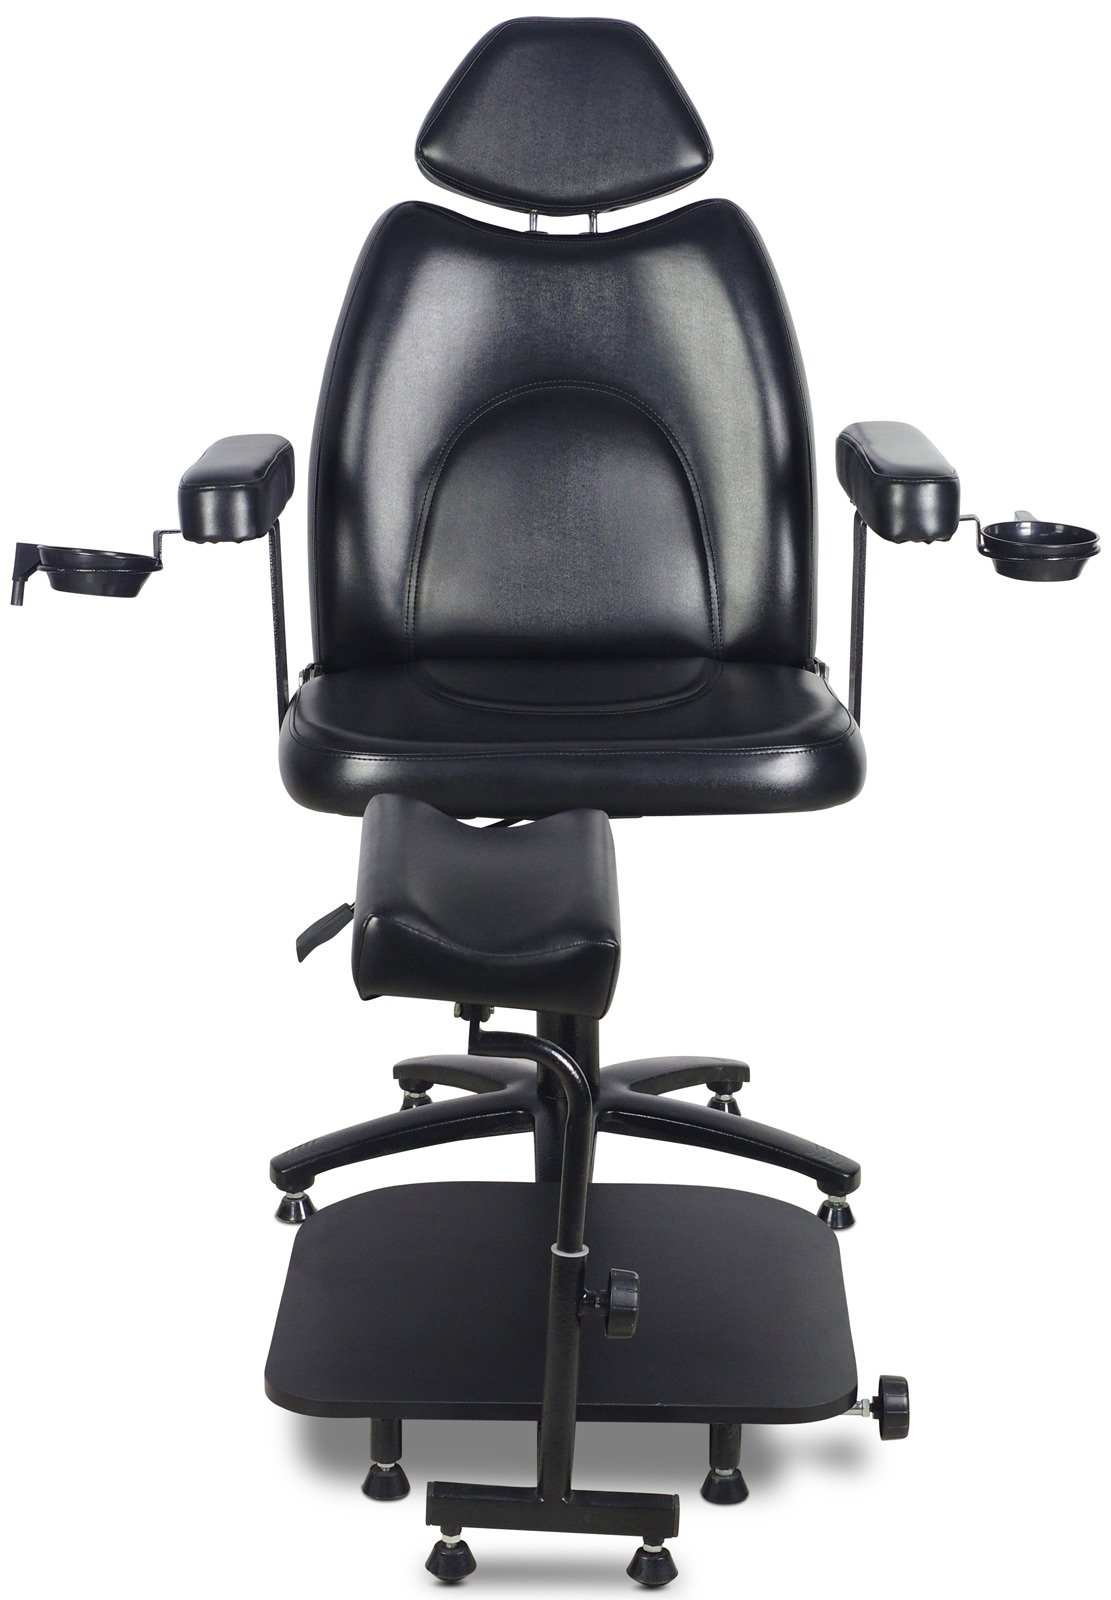 Icarus ''Zenith'' Black Pedicure Foot Spa Station Chair by Icarus (Image #7)